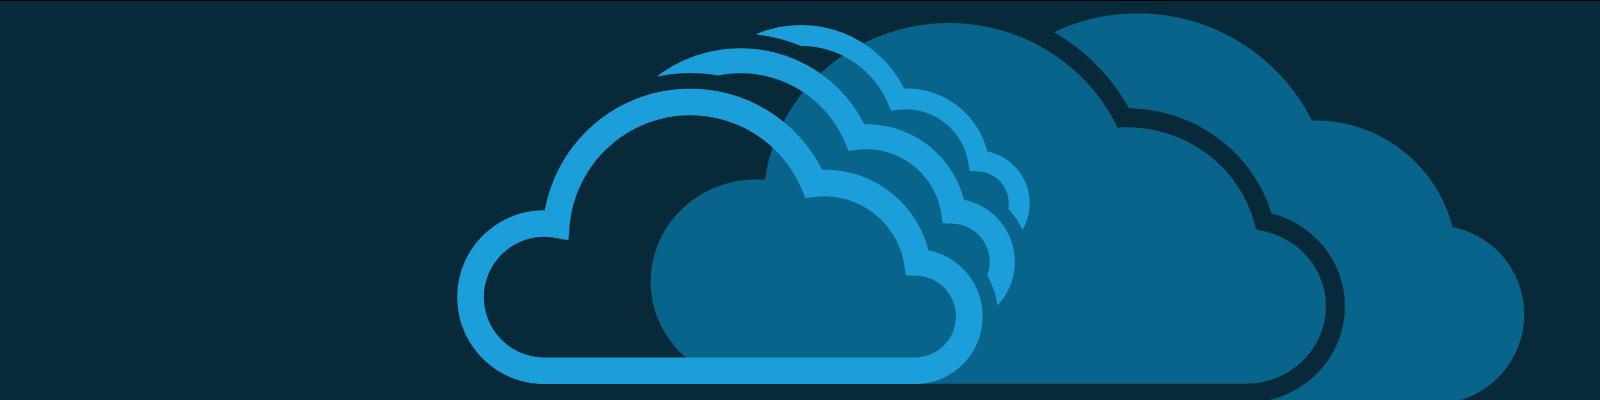 Datto Cloud Retention: You've Got Options